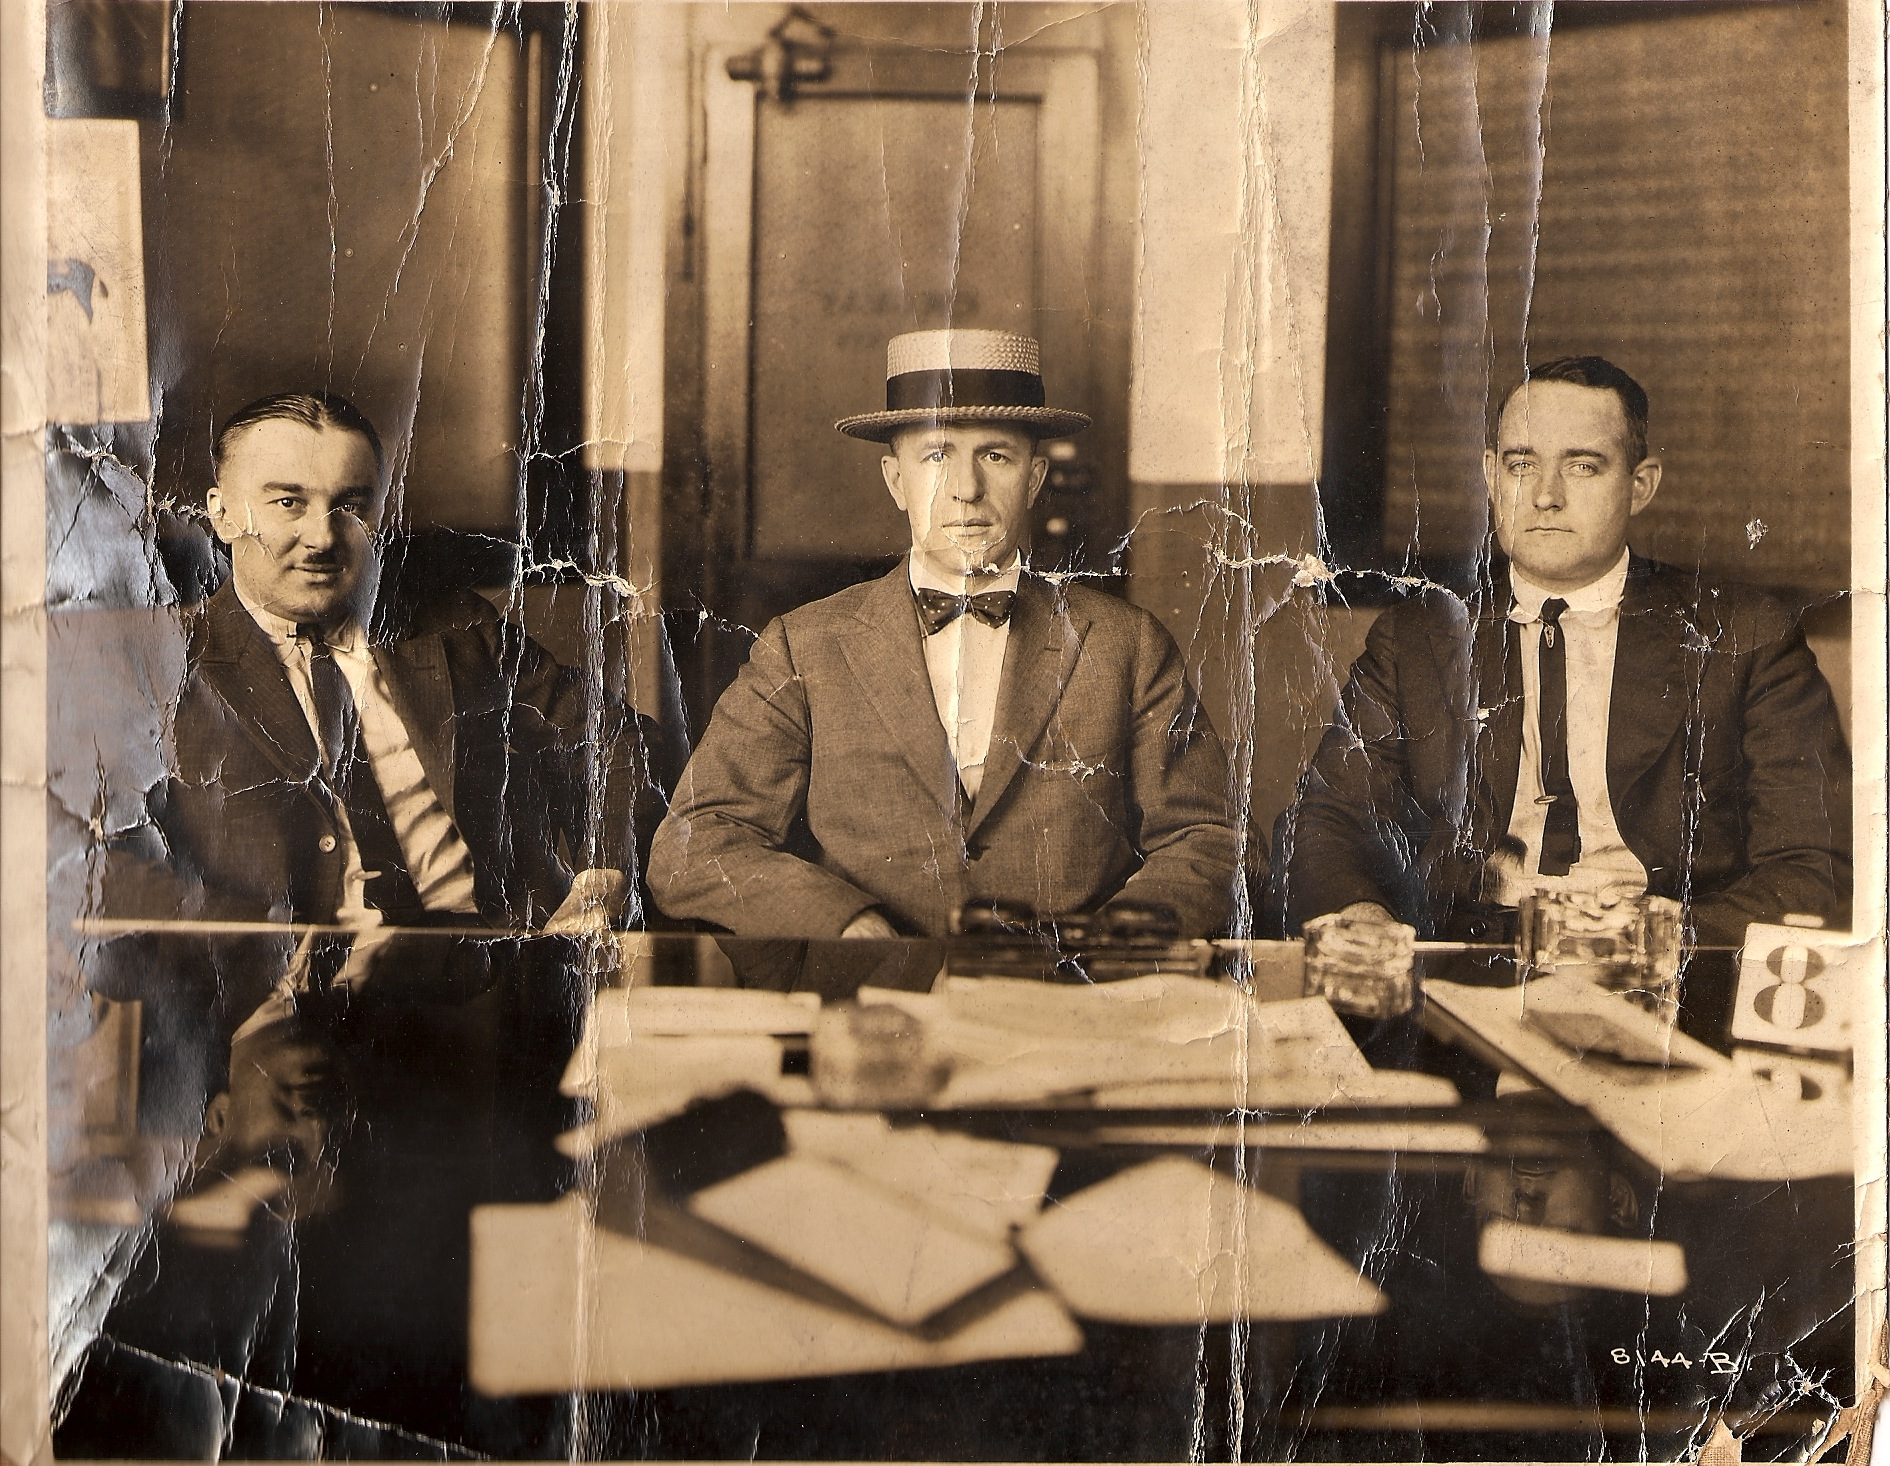 Thomas B. Hogan of the Yellow Cab Company, Chicago Illinois is seated at the center of the photograph.